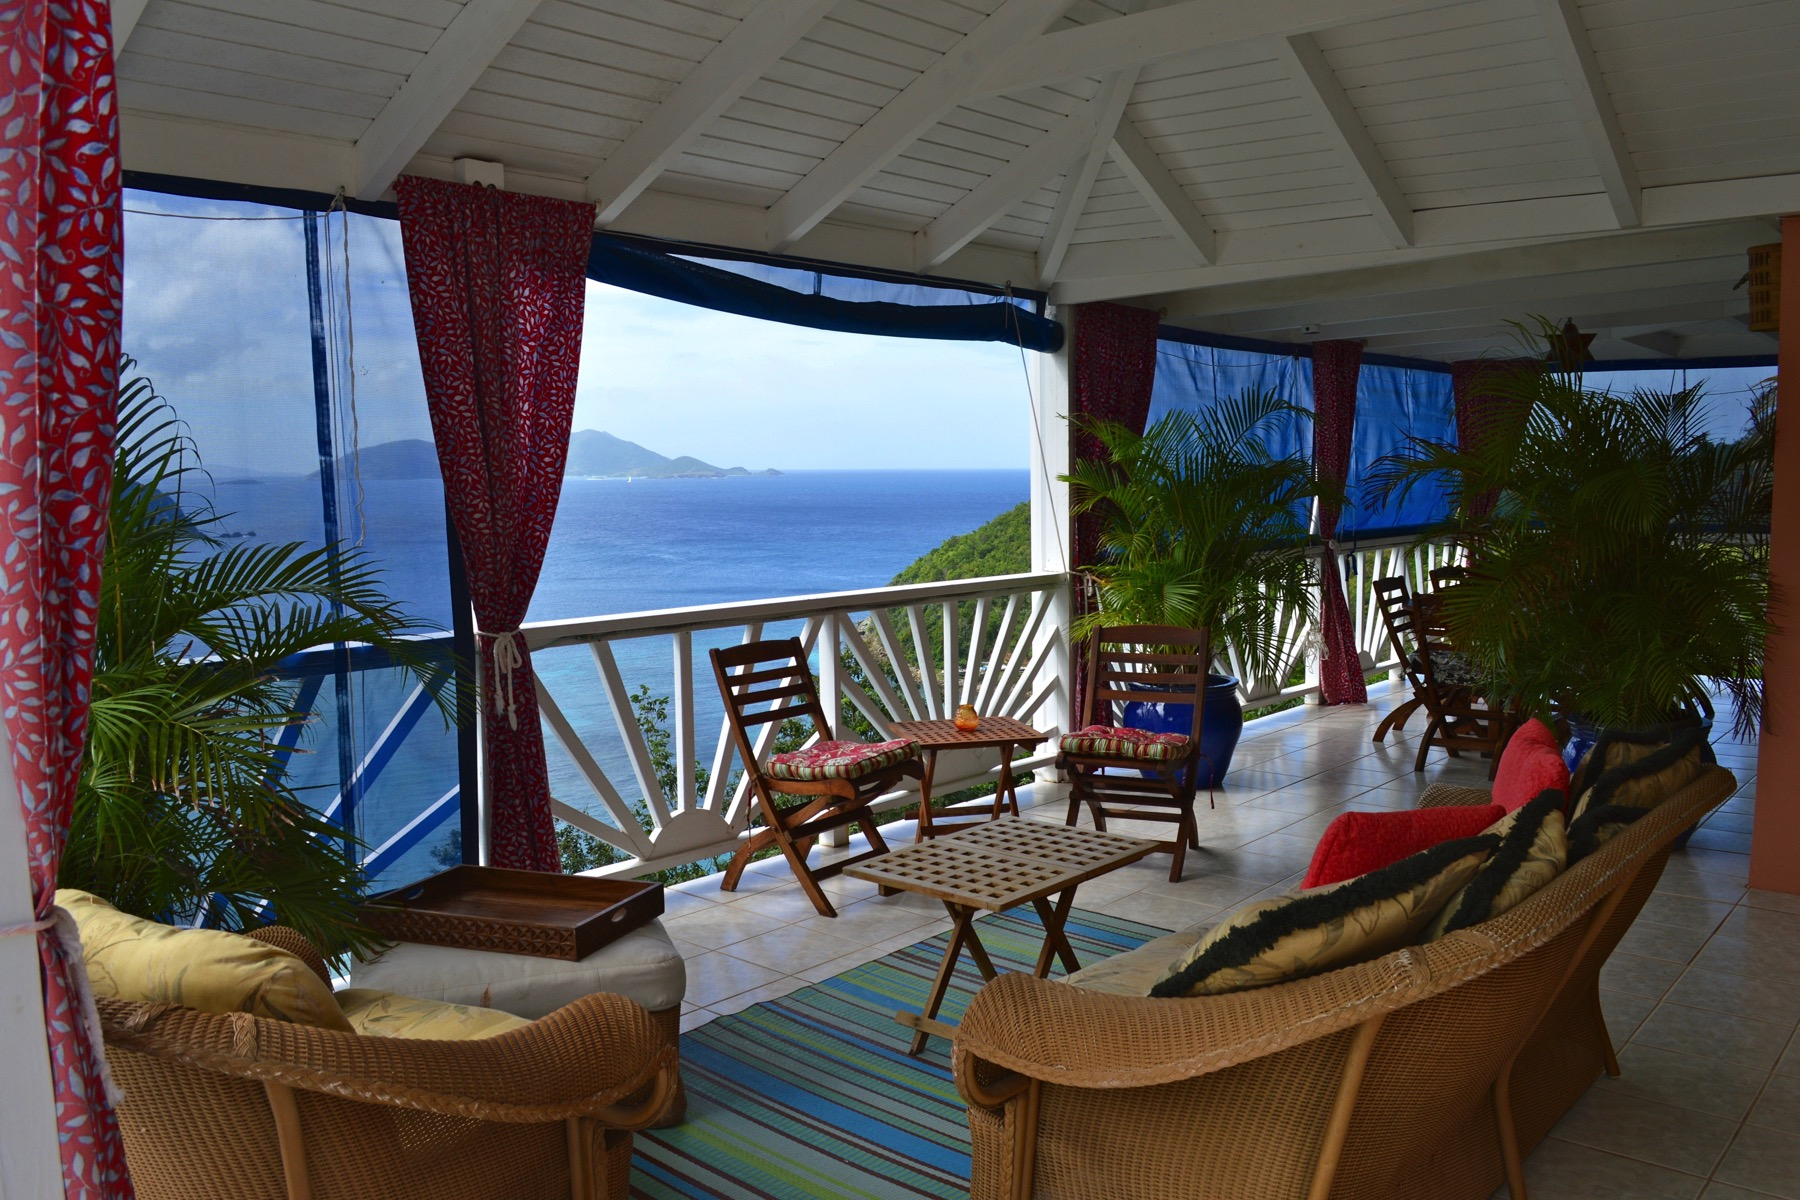 Brewers Bay Sunset Villa Brewers Bay, Tortola British Virgin Islands